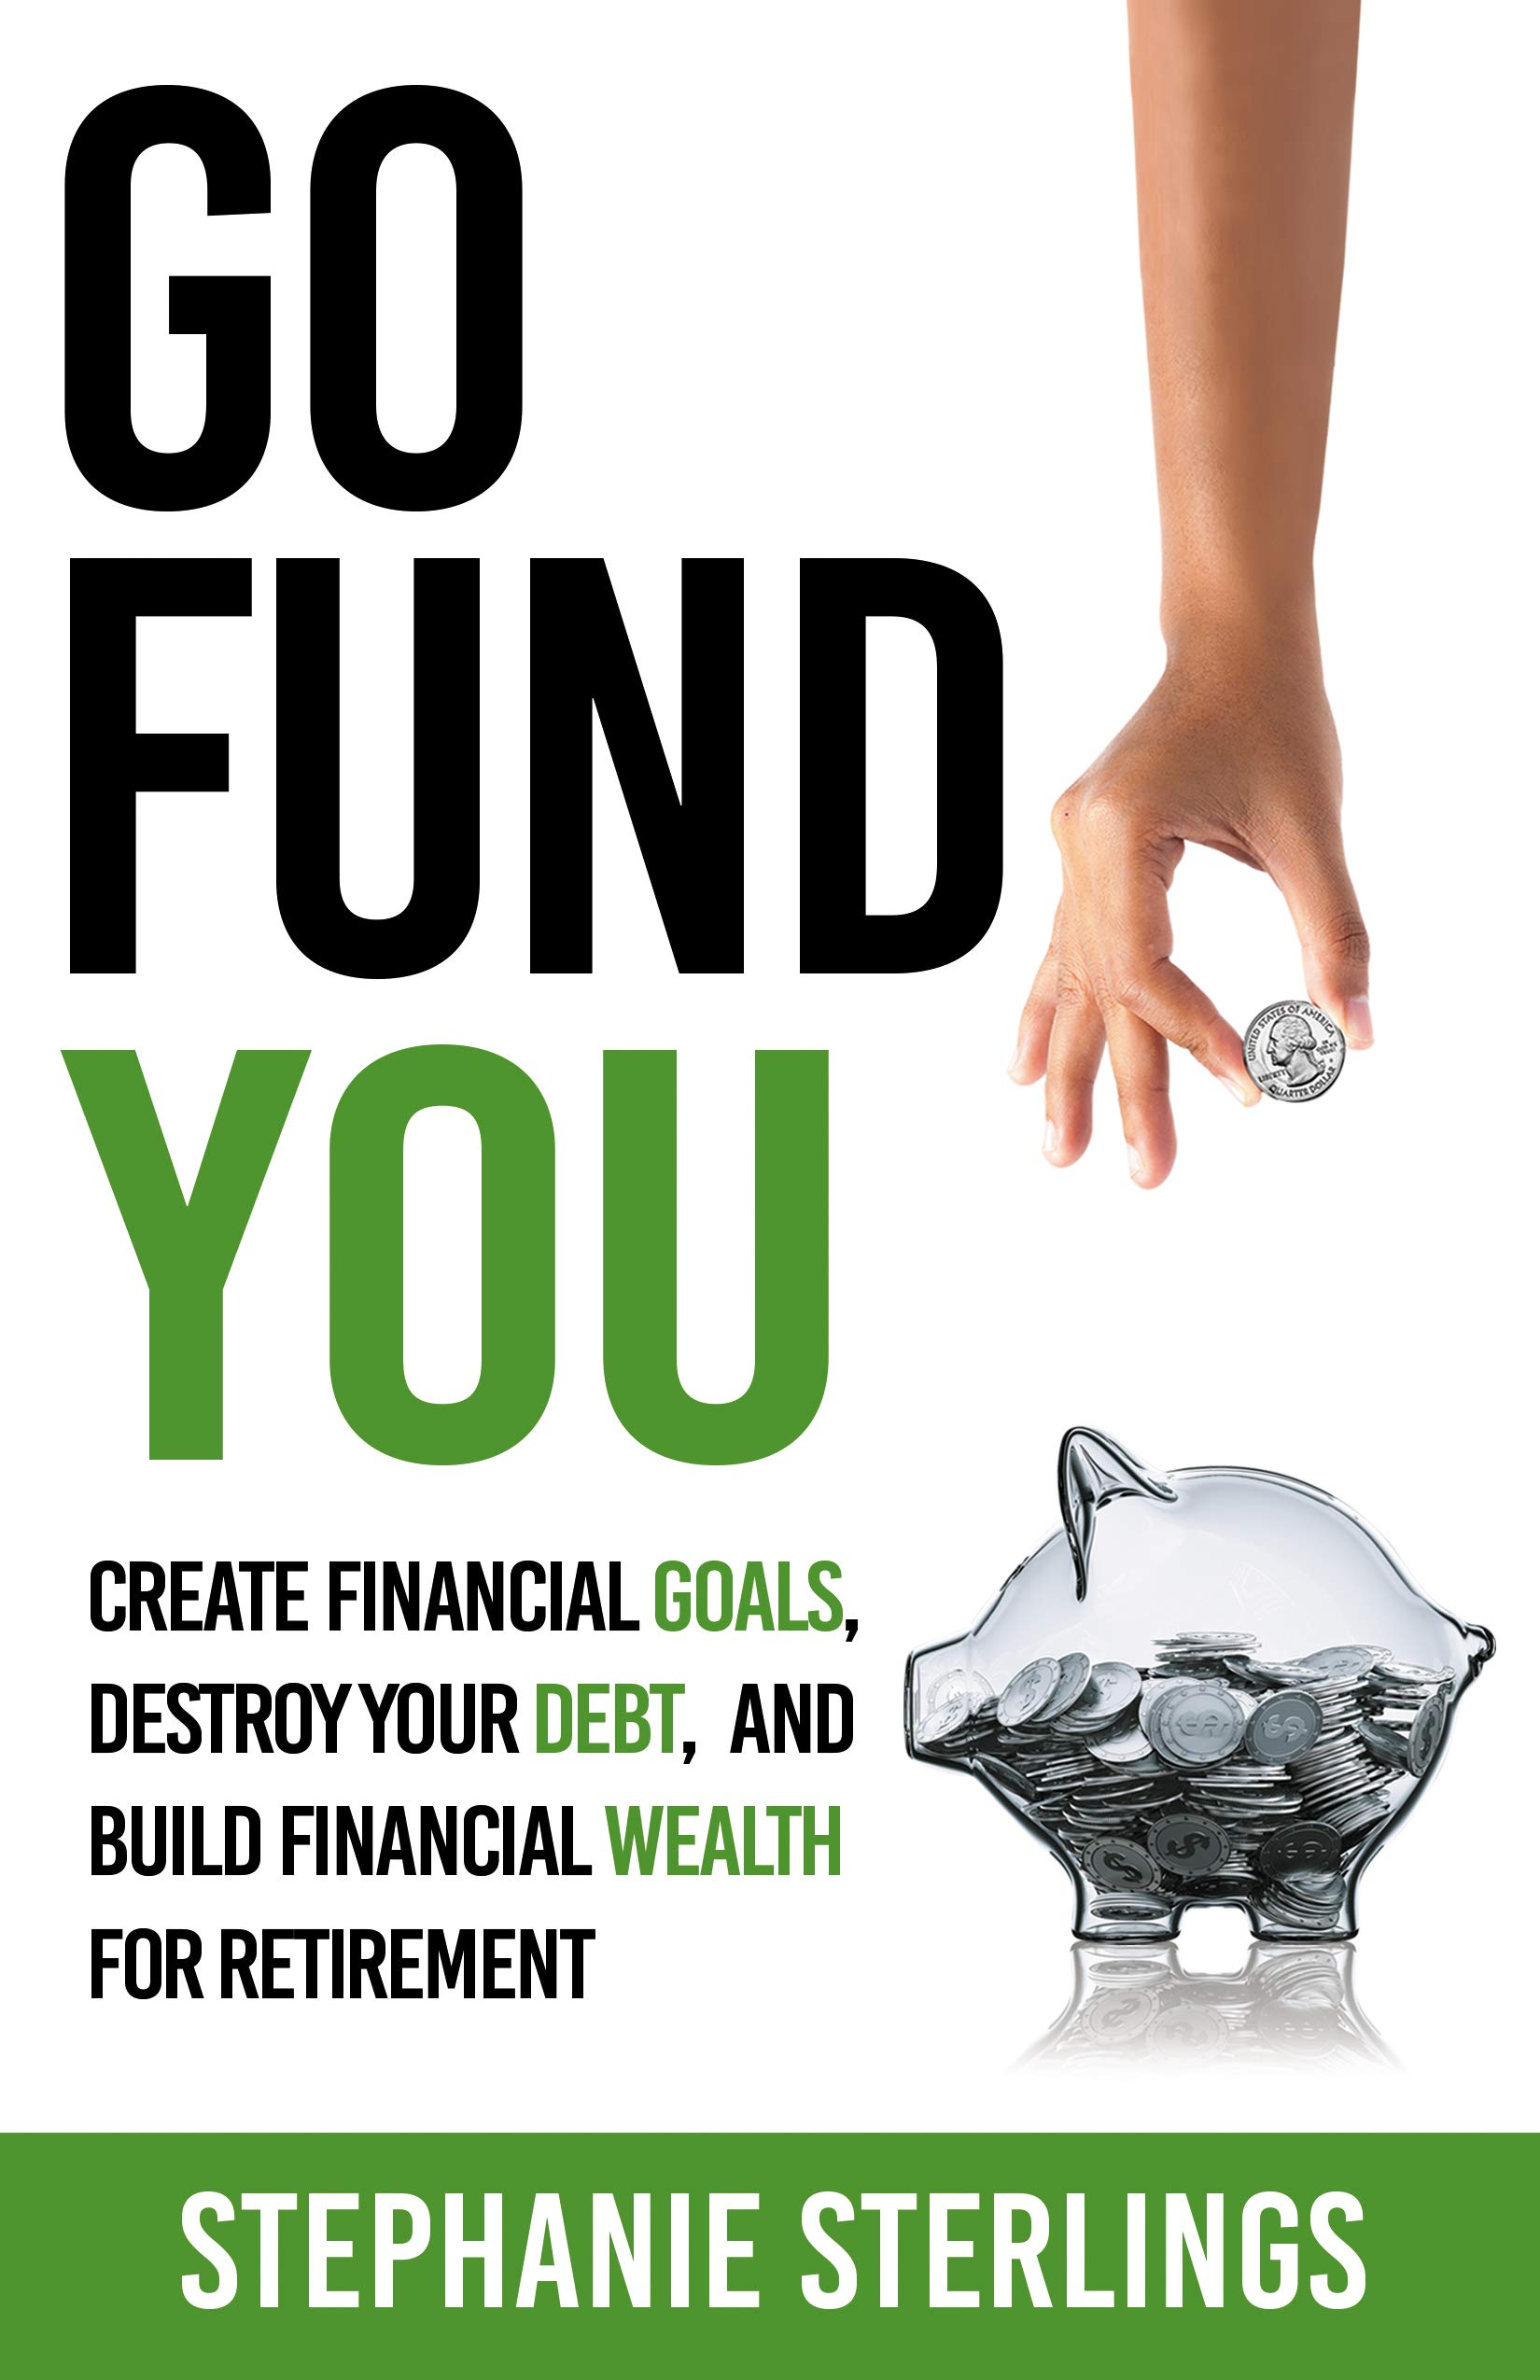 Go Fund You: CREATE FINANCIAL GOALS, DESTROY YOUR DEBT, AND BUILD FINANCIAL WEALTH FOR RETIREMENT